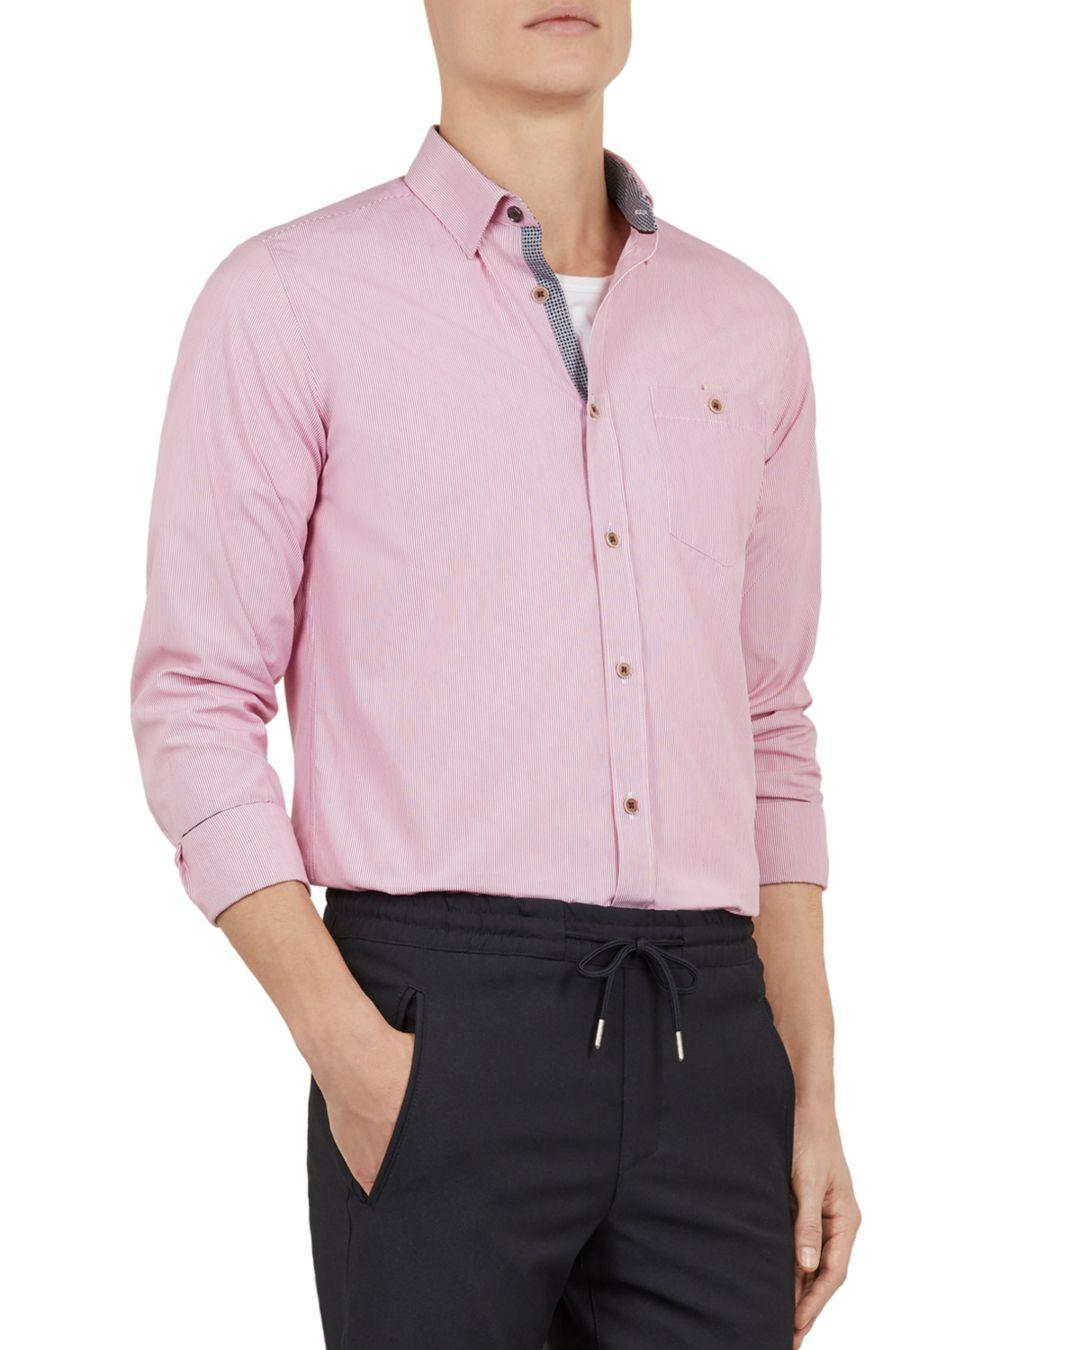 e0a846101f31 Lyst - Ted Baker Yerman Striped Slim-fit Shirt in Pink for Men